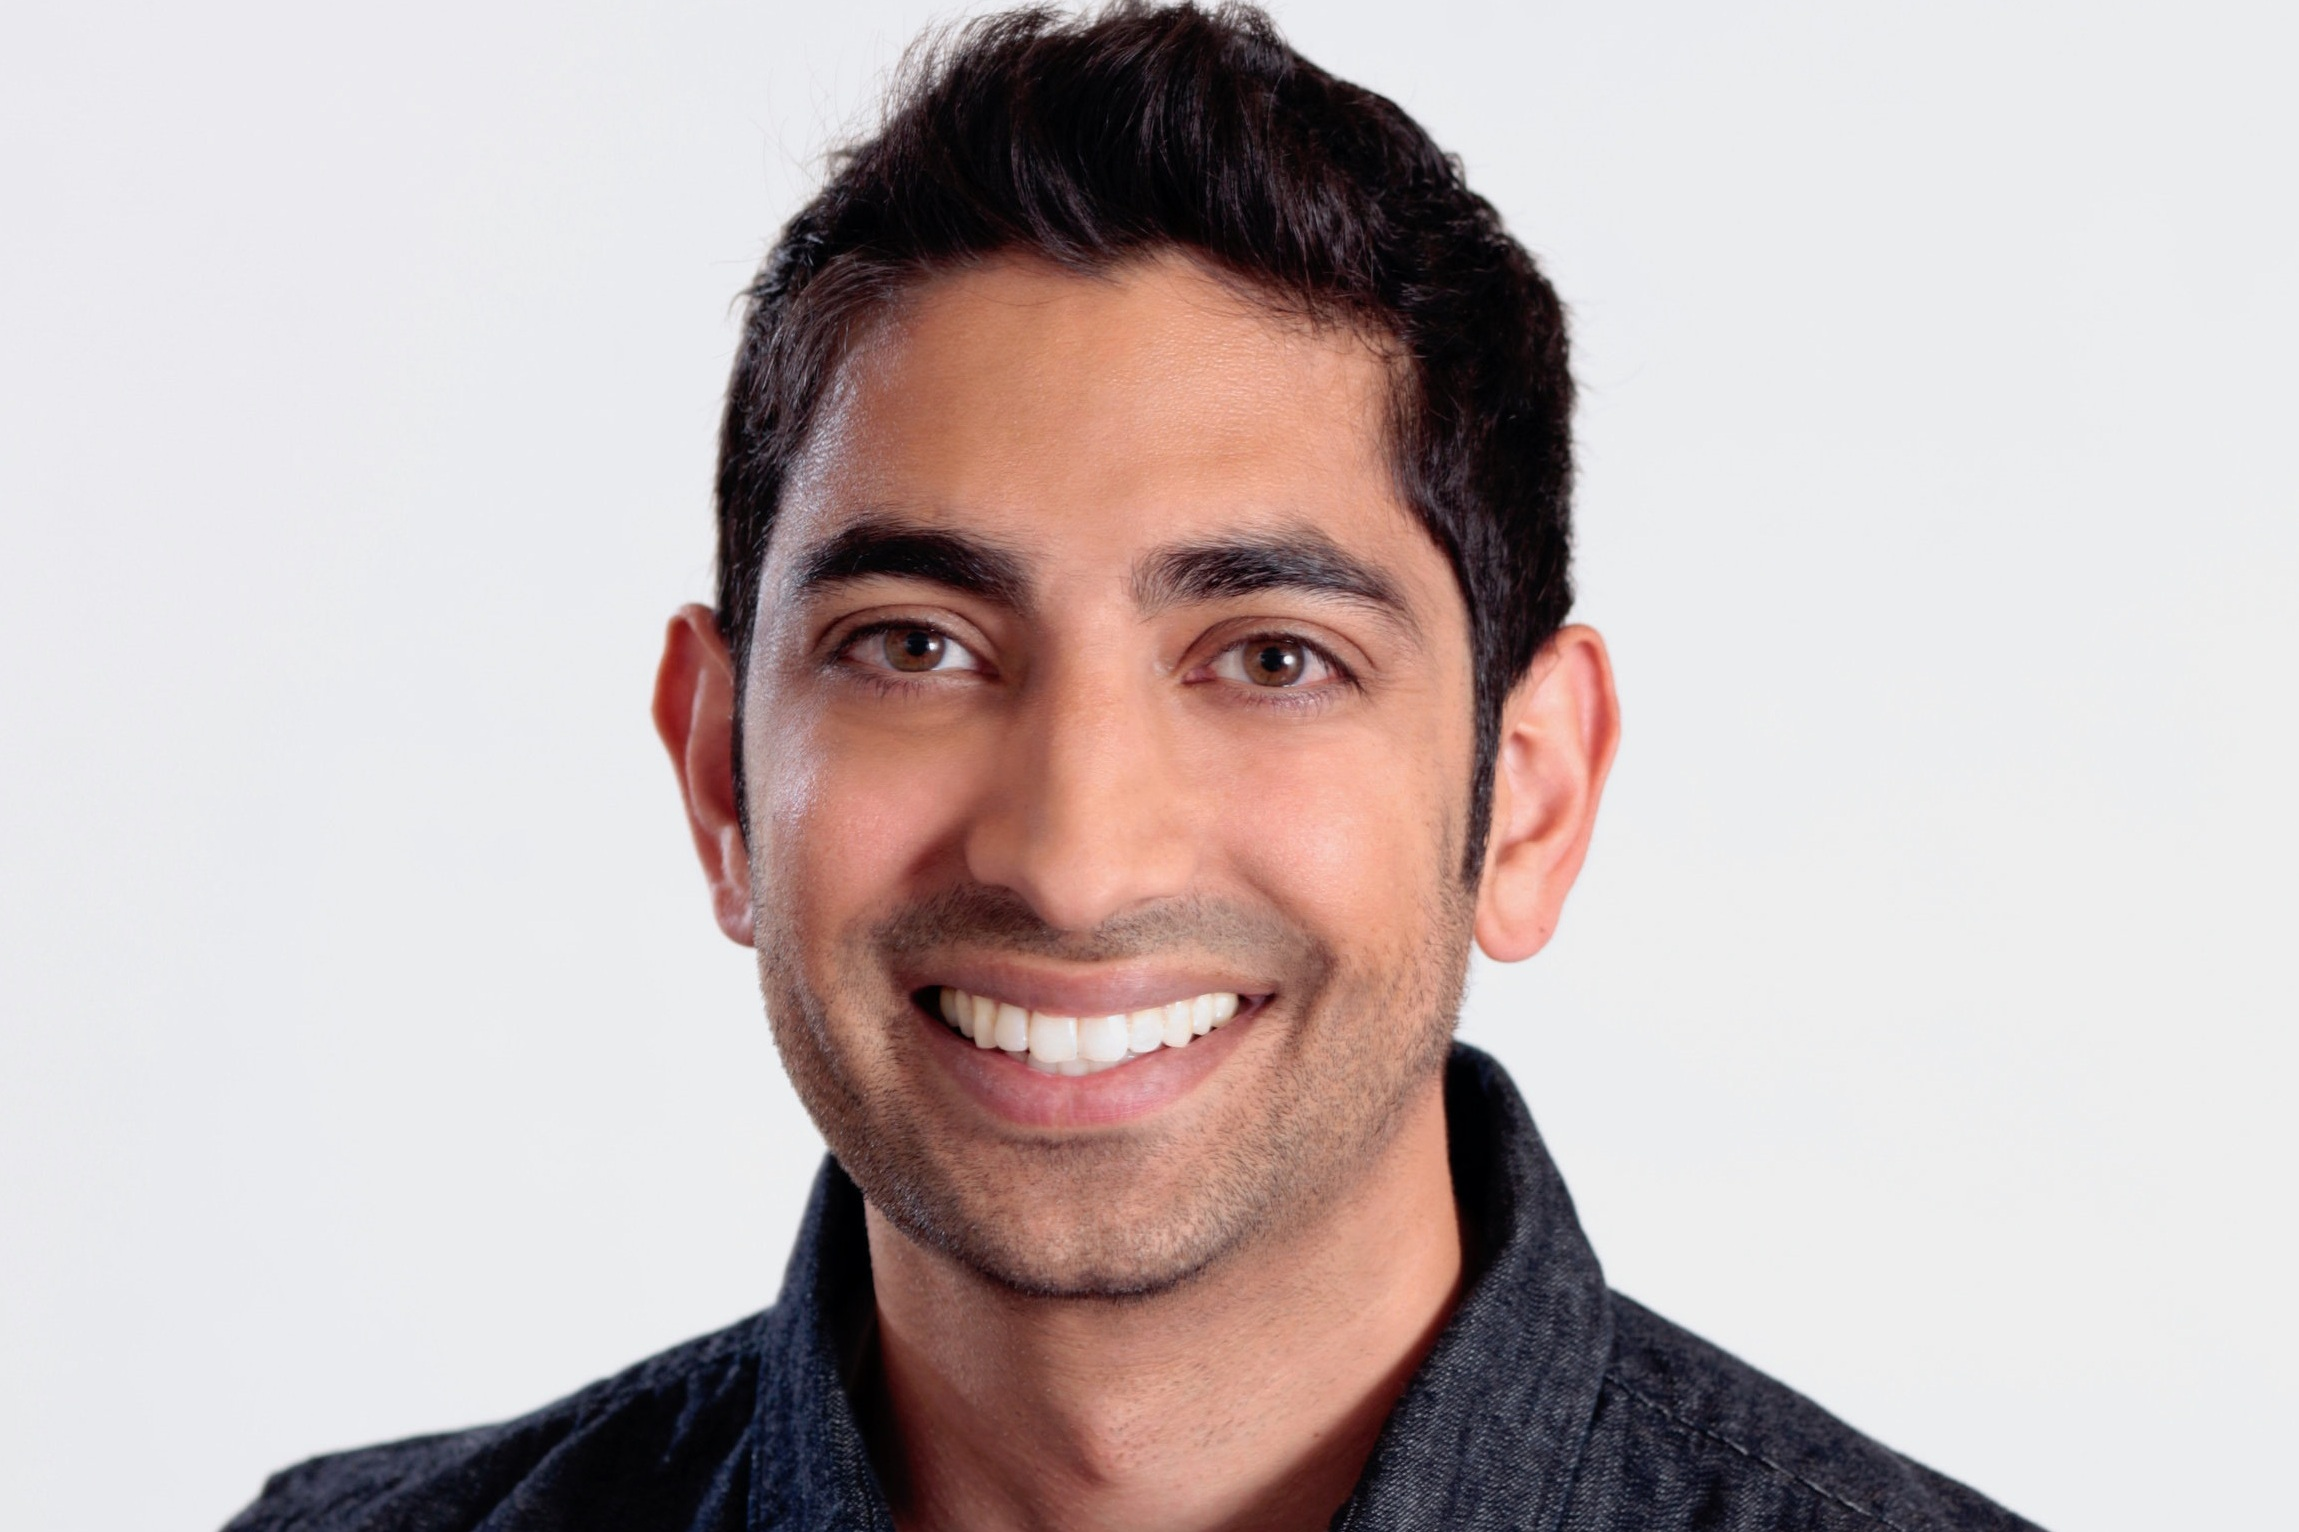 Rahim Fazal   Originally from Vancouver, Rahim is a founder of several B2B software companies, including Involver, an enterprise social media platform, which was acquired by Oracle. Post sale, he spent nearly three years helping to build the Oracle Marketing Cloud, and supporting the global field, inside sales and product development organizations. Rahim is now the CEO of SVAcademy, a future of work platform, which is funded by Bloomberg, and provides pre-trained entry-level sales talent to Silicon Valley's fastest growing SaaS companies.  While in high school back in Canada, Rahim founded a web hosting company, which he sold for $1.5m (without telling his parents). He completed his MBA at the Ivey School of Business, where he was the first student accepted without a pre-requisite undergraduate degree.   Twitter  &  LinkedIn